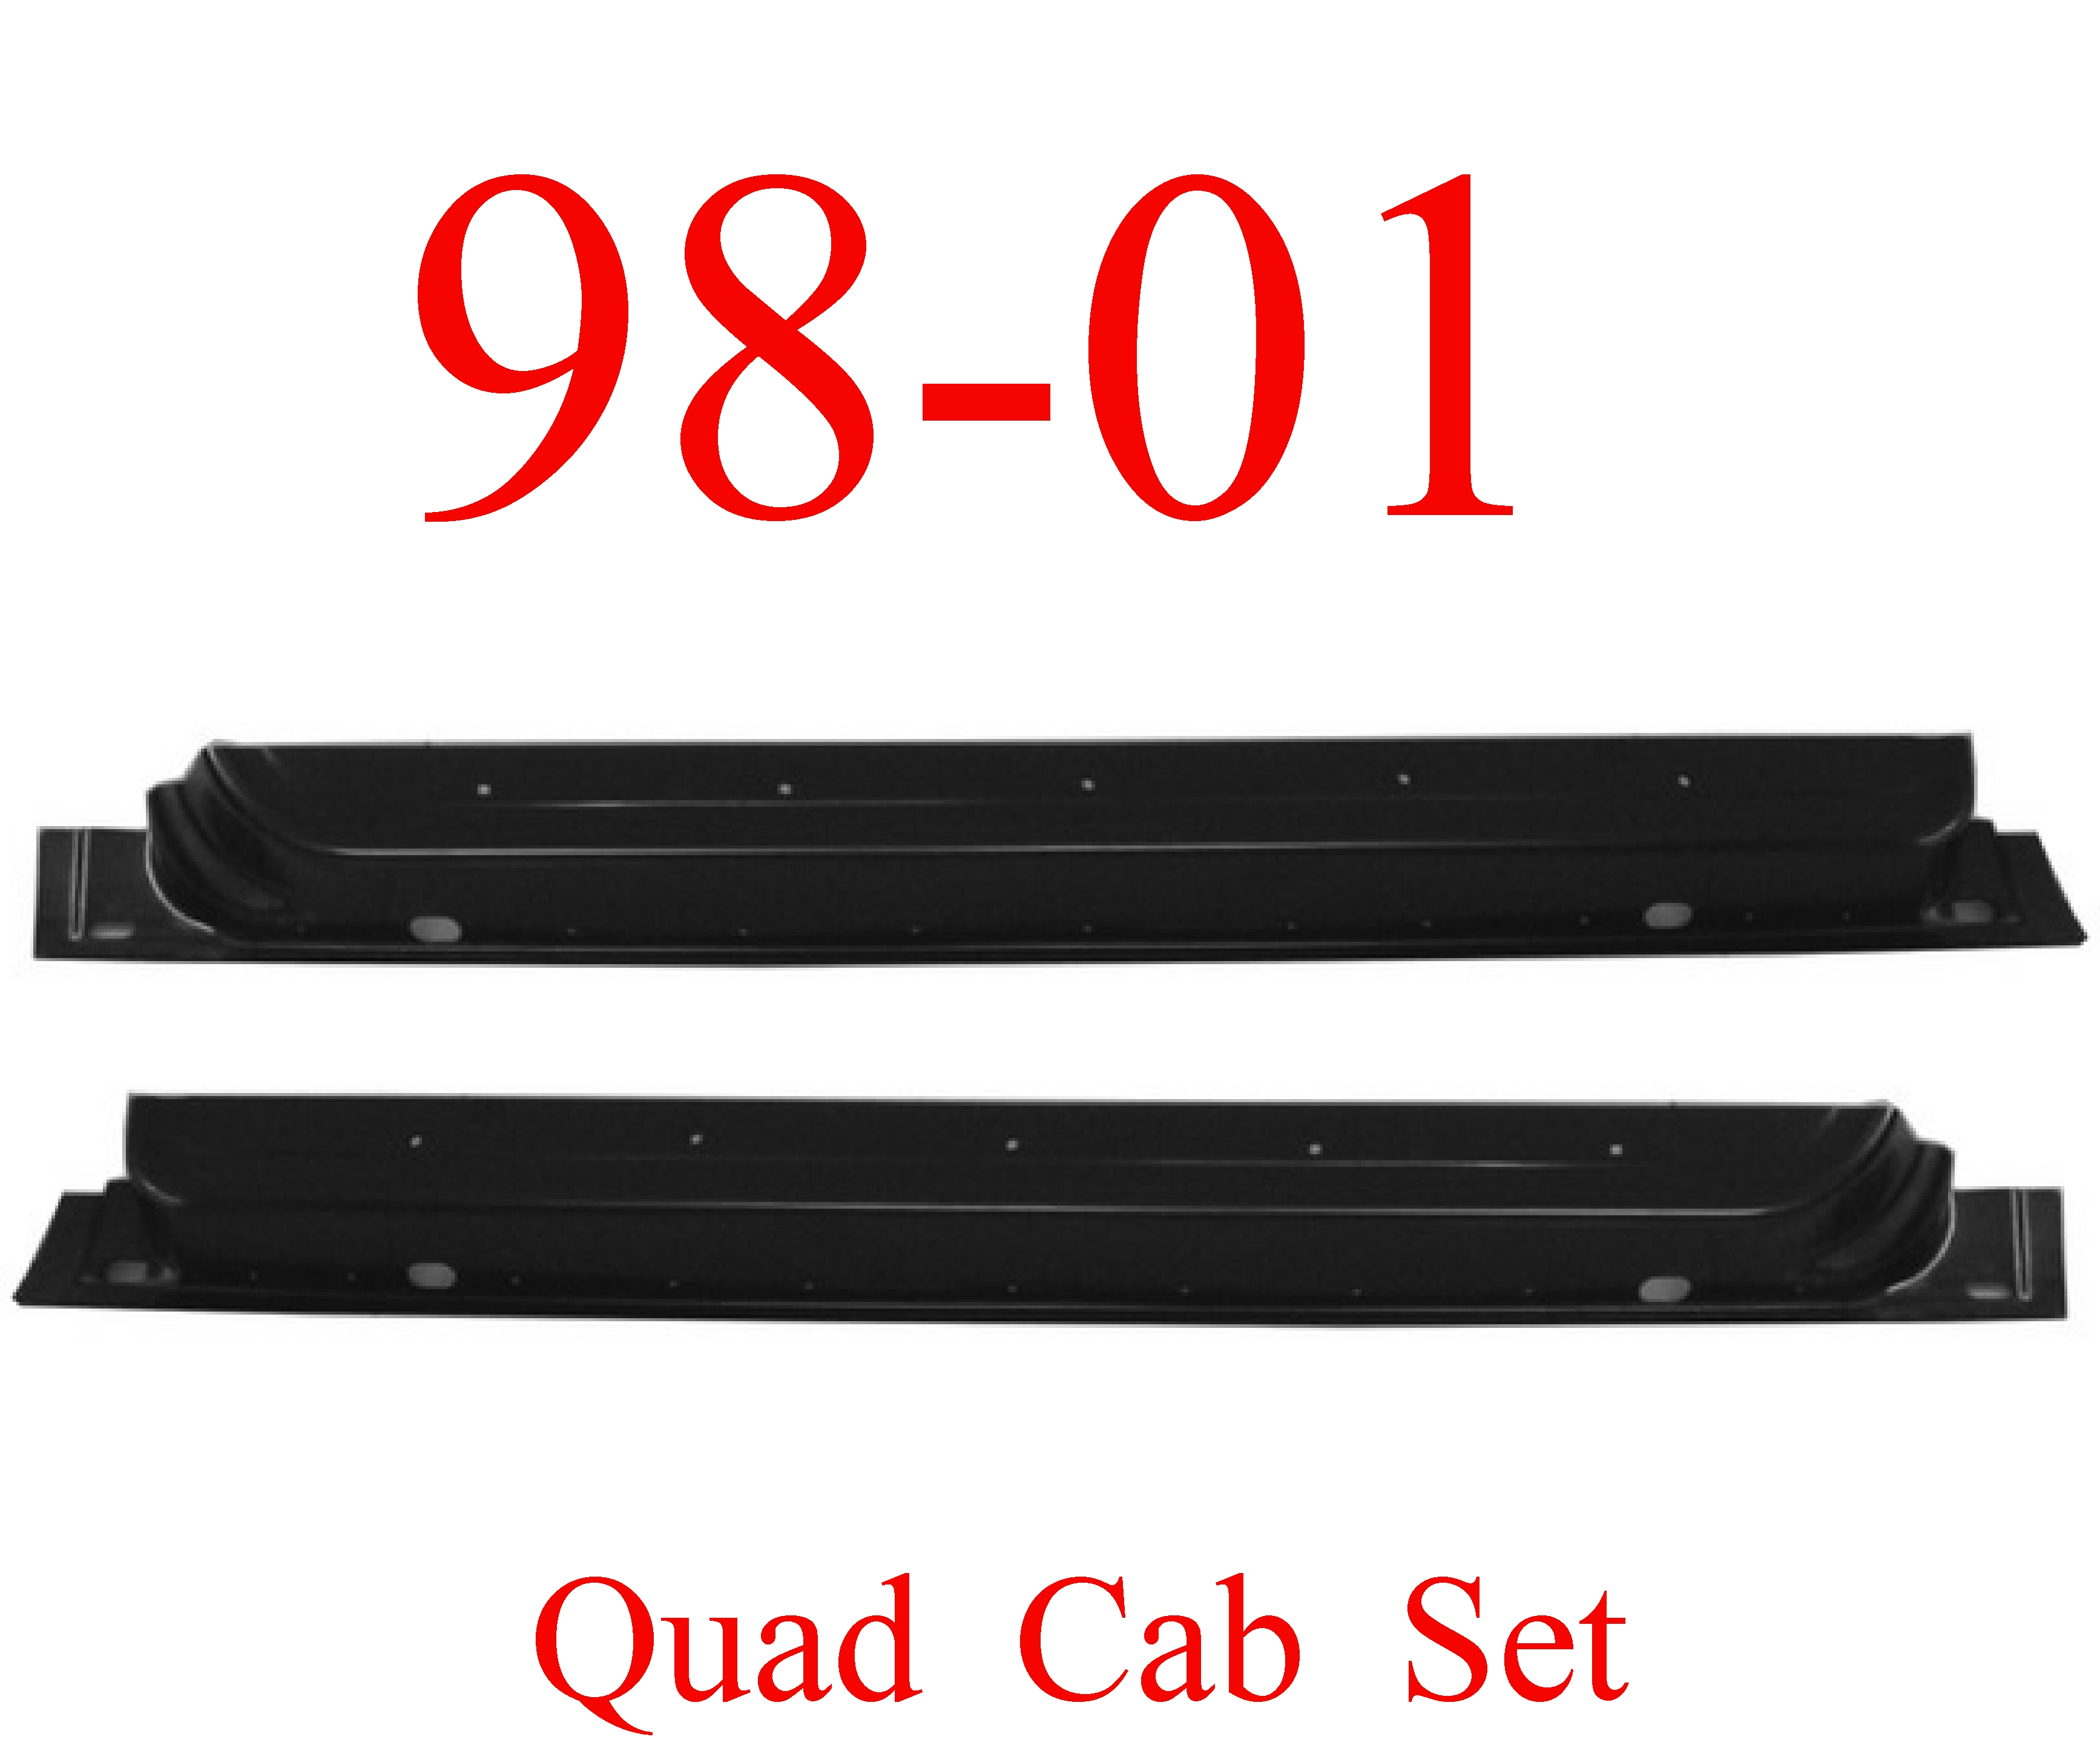 98-01 Dodge Front Quad Cab Inner Door Bottom SET